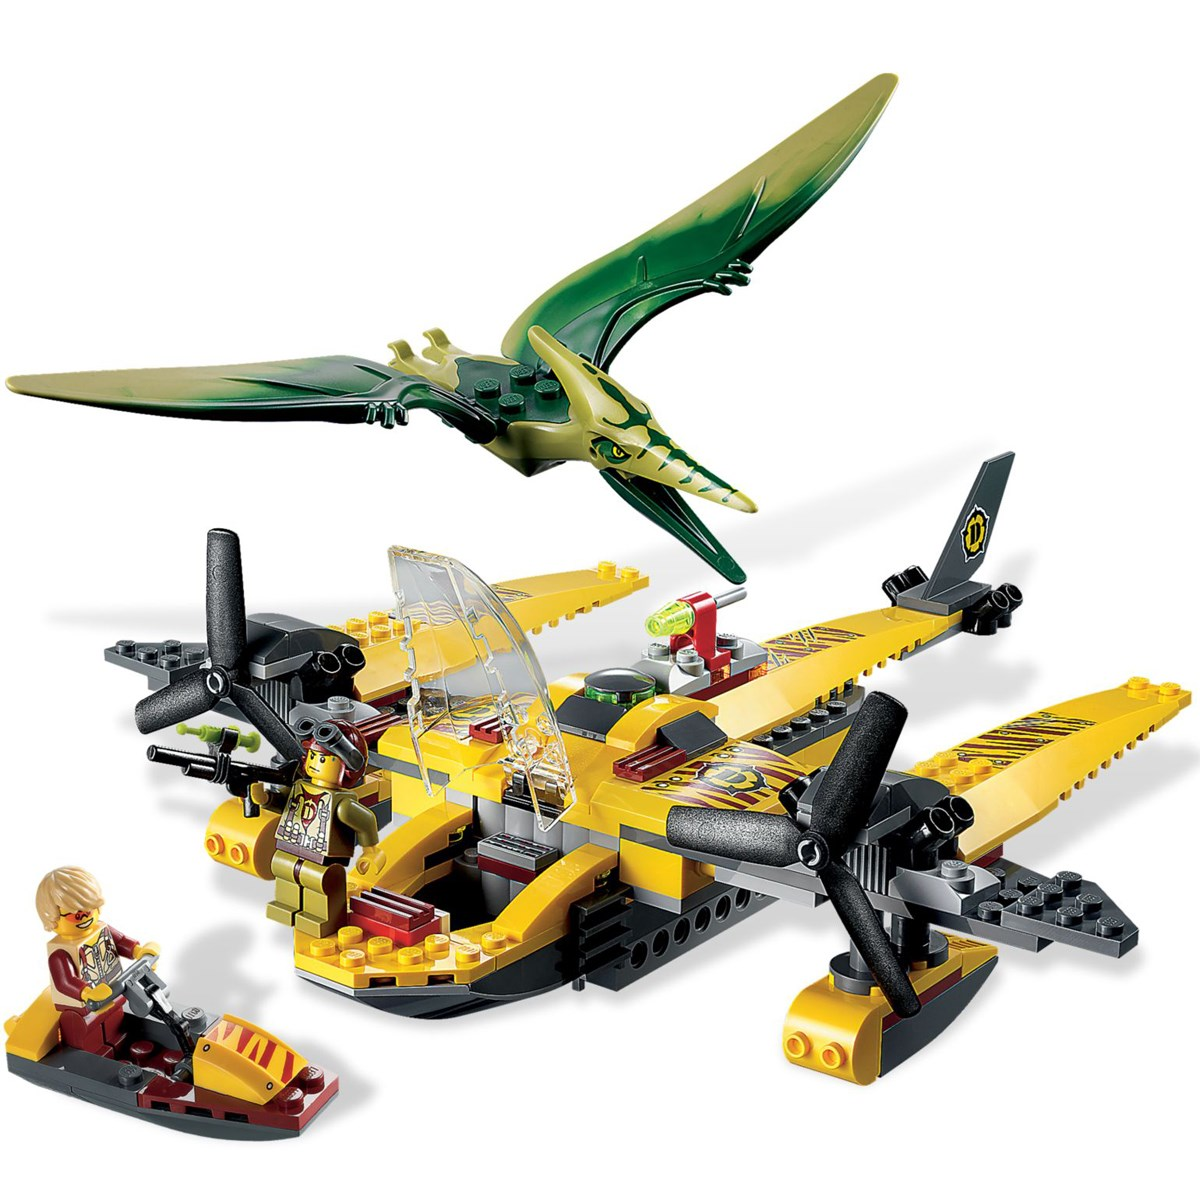 Do choi Lego 5888 - May bay Chien Dau Dai Duong